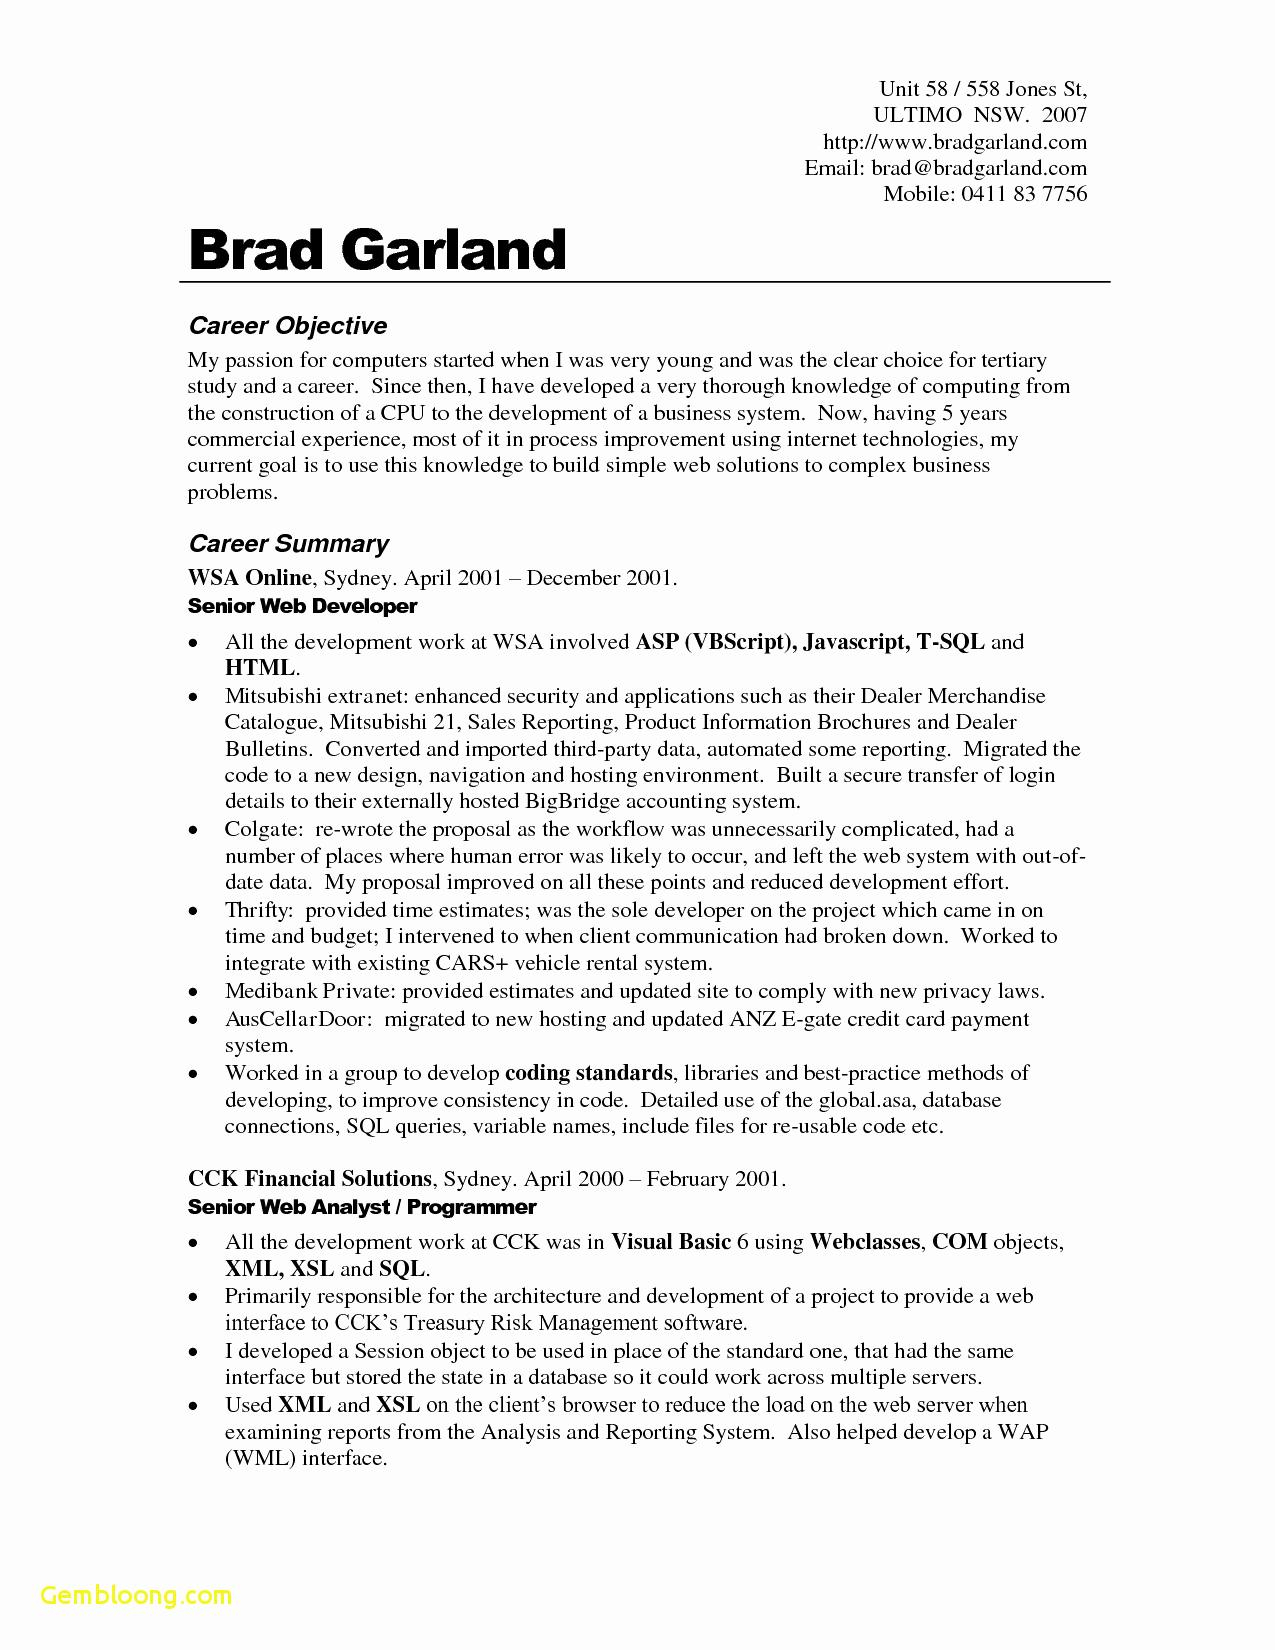 Reverse Chronological Resume - Chronological Resume format Download Fresh Resume Examples Download